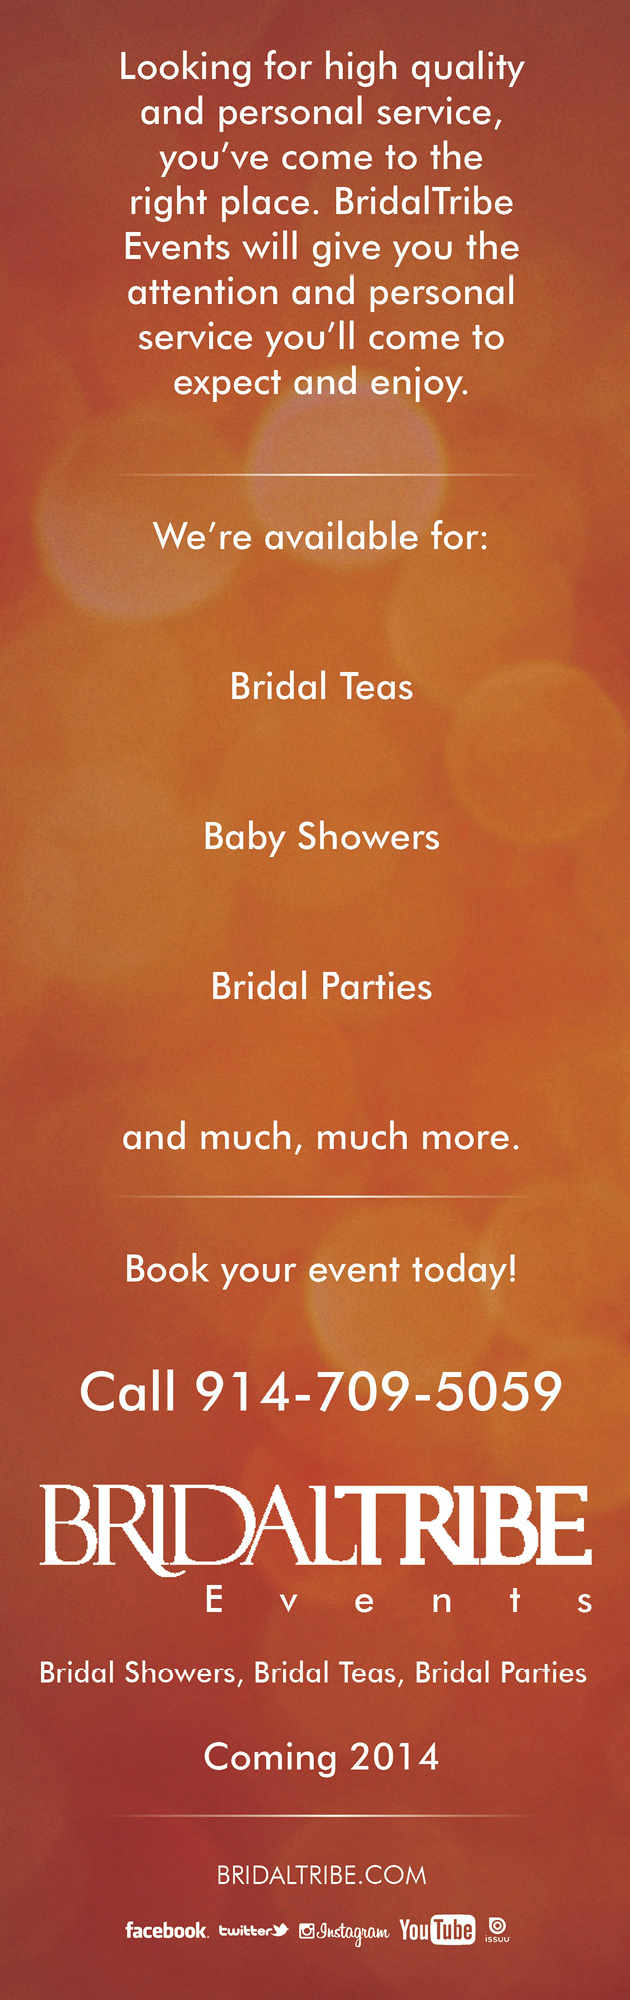 Bridal Tribe Events